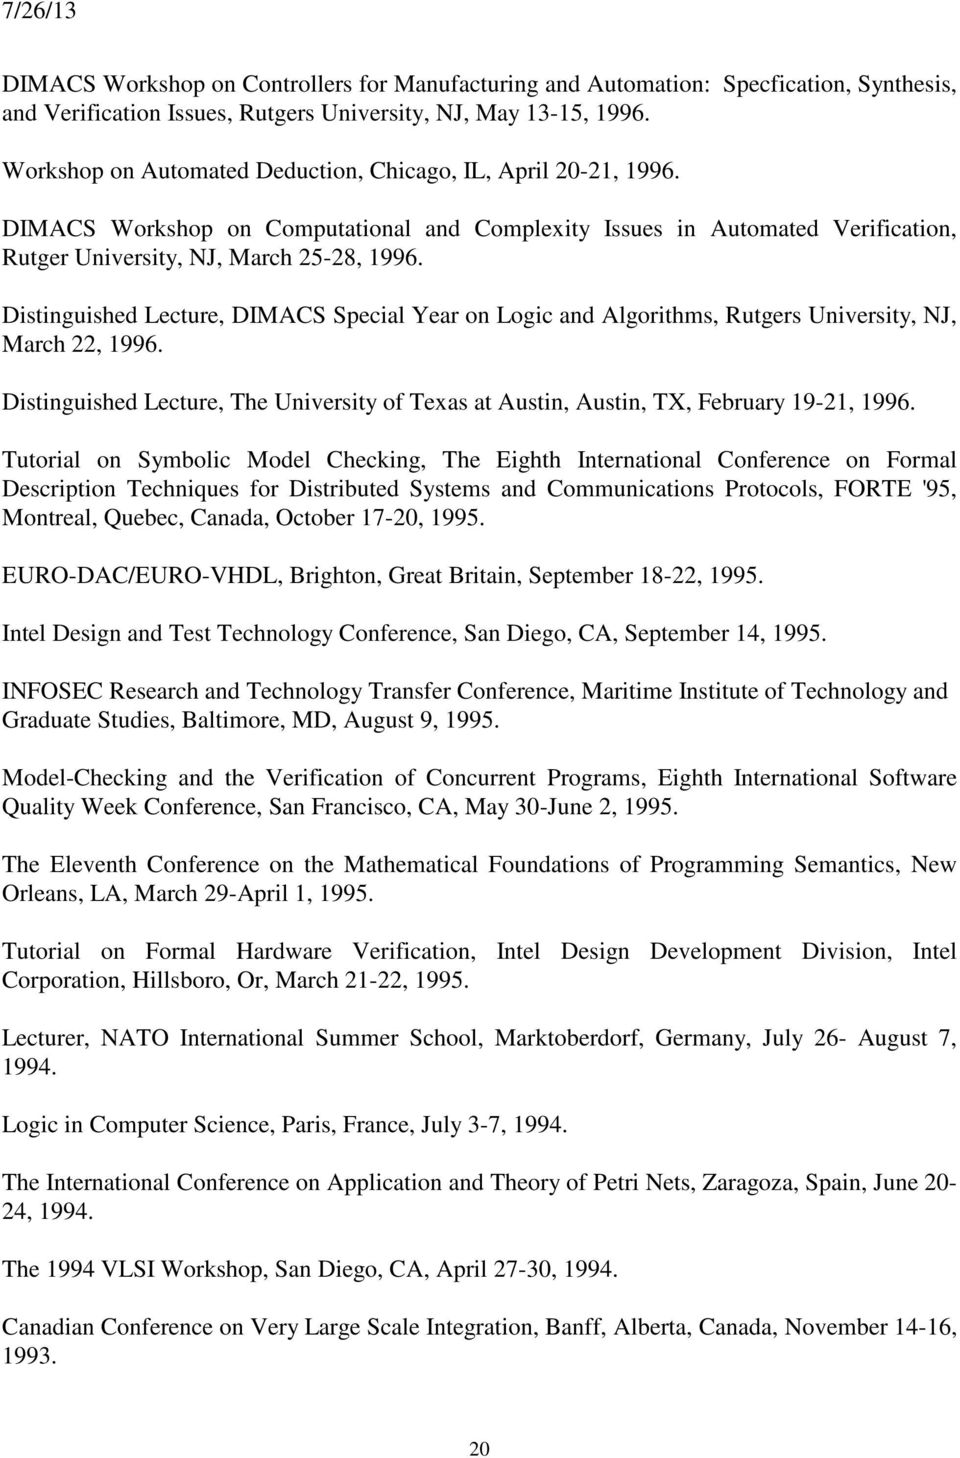 Distinguished Lecture, DIMACS Special Year on Logic and Algorithms, Rutgers University, NJ, March 22, 1996. Distinguished Lecture, The University of Texas at Austin, Austin, TX, February 19-21, 1996.